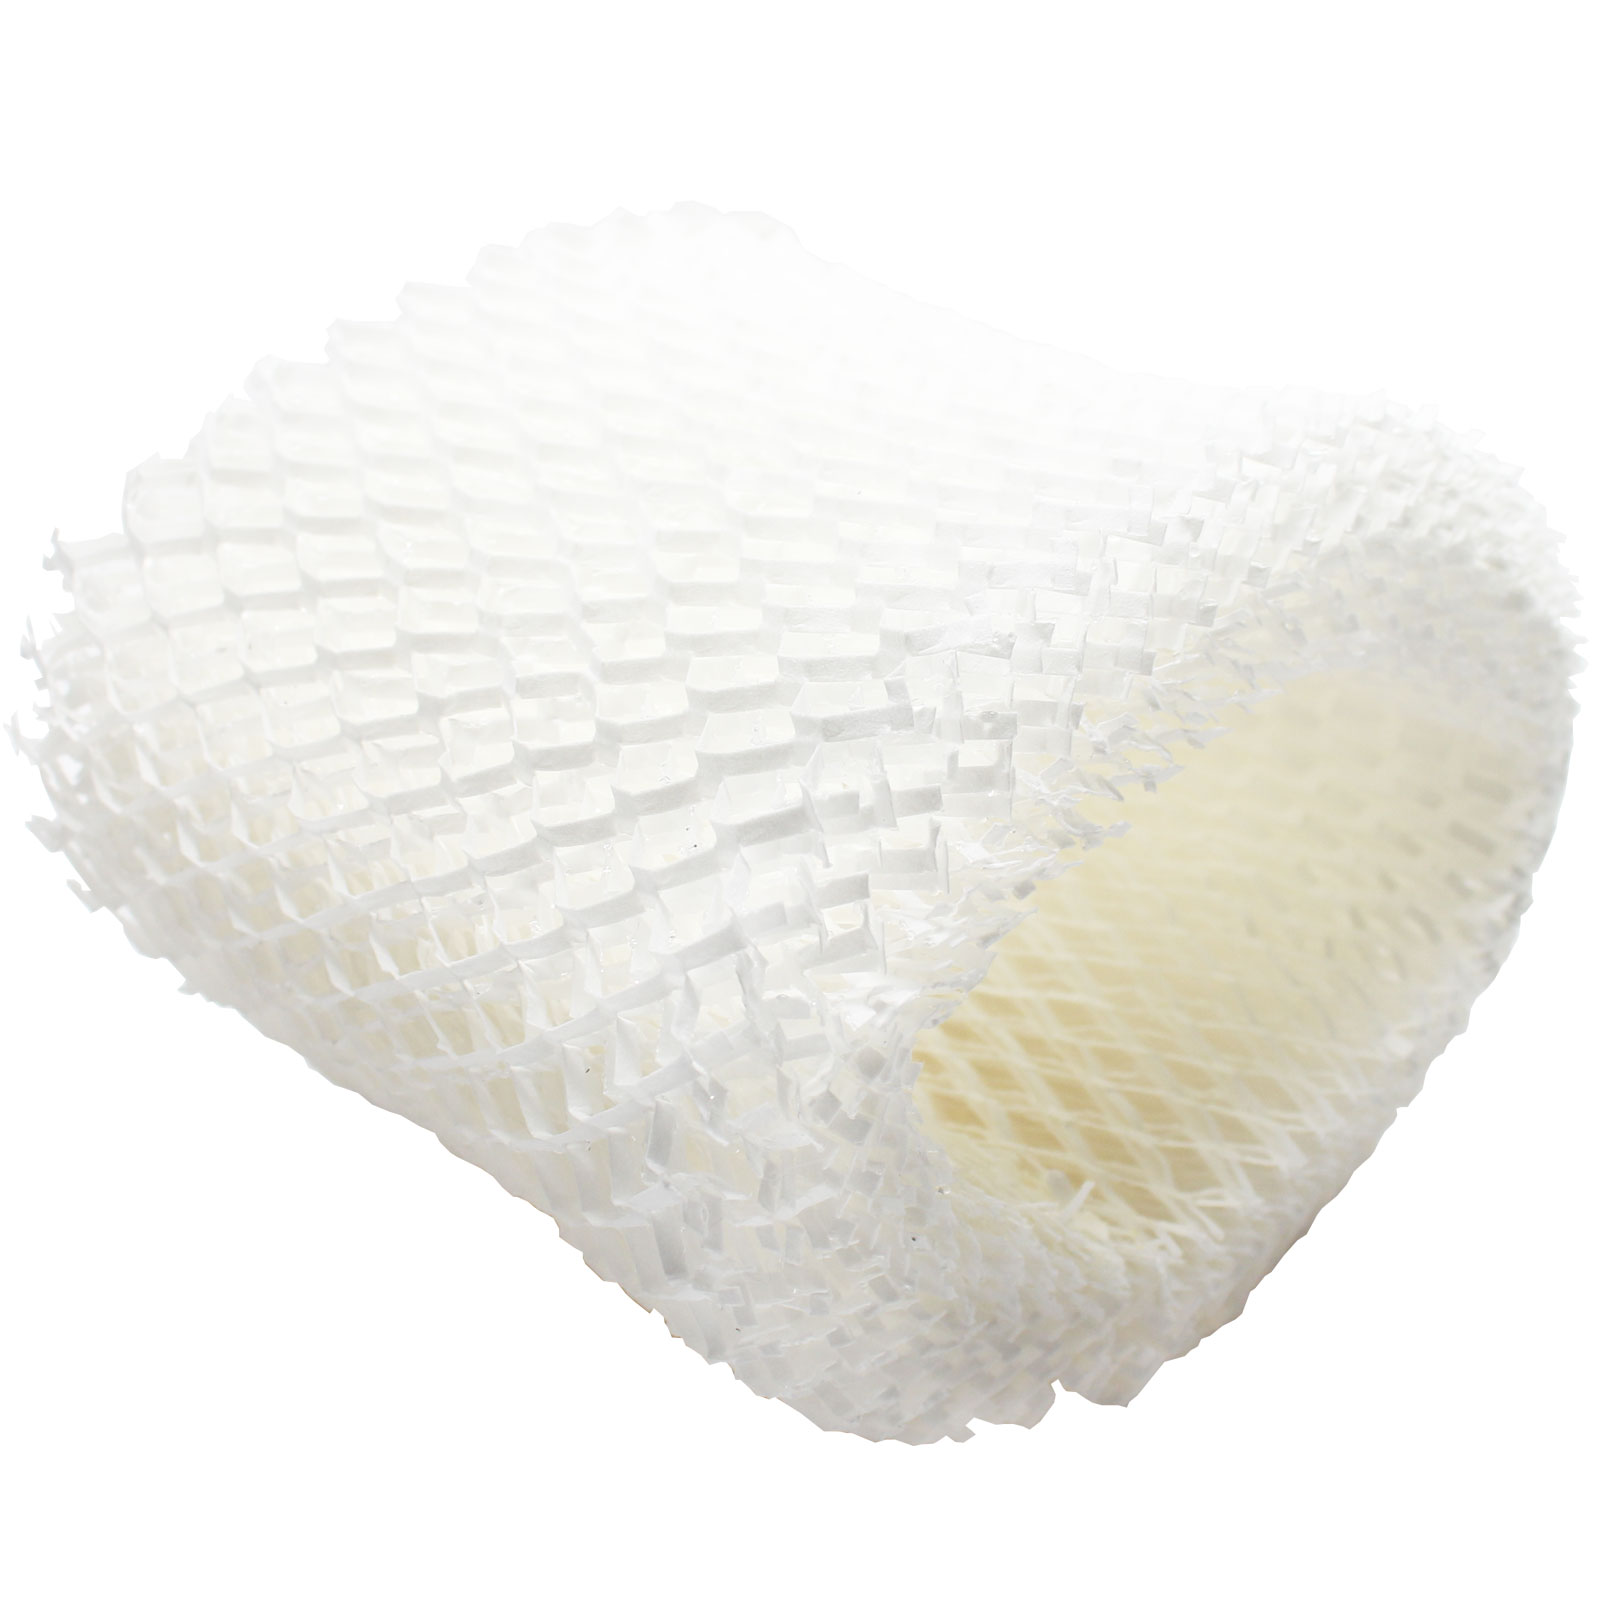 Replacement Honeywell HCM-646 Humidifier Filter - Compatible Honeywell HAC-504, HAC-504AW Air Filter - image 2 of 4